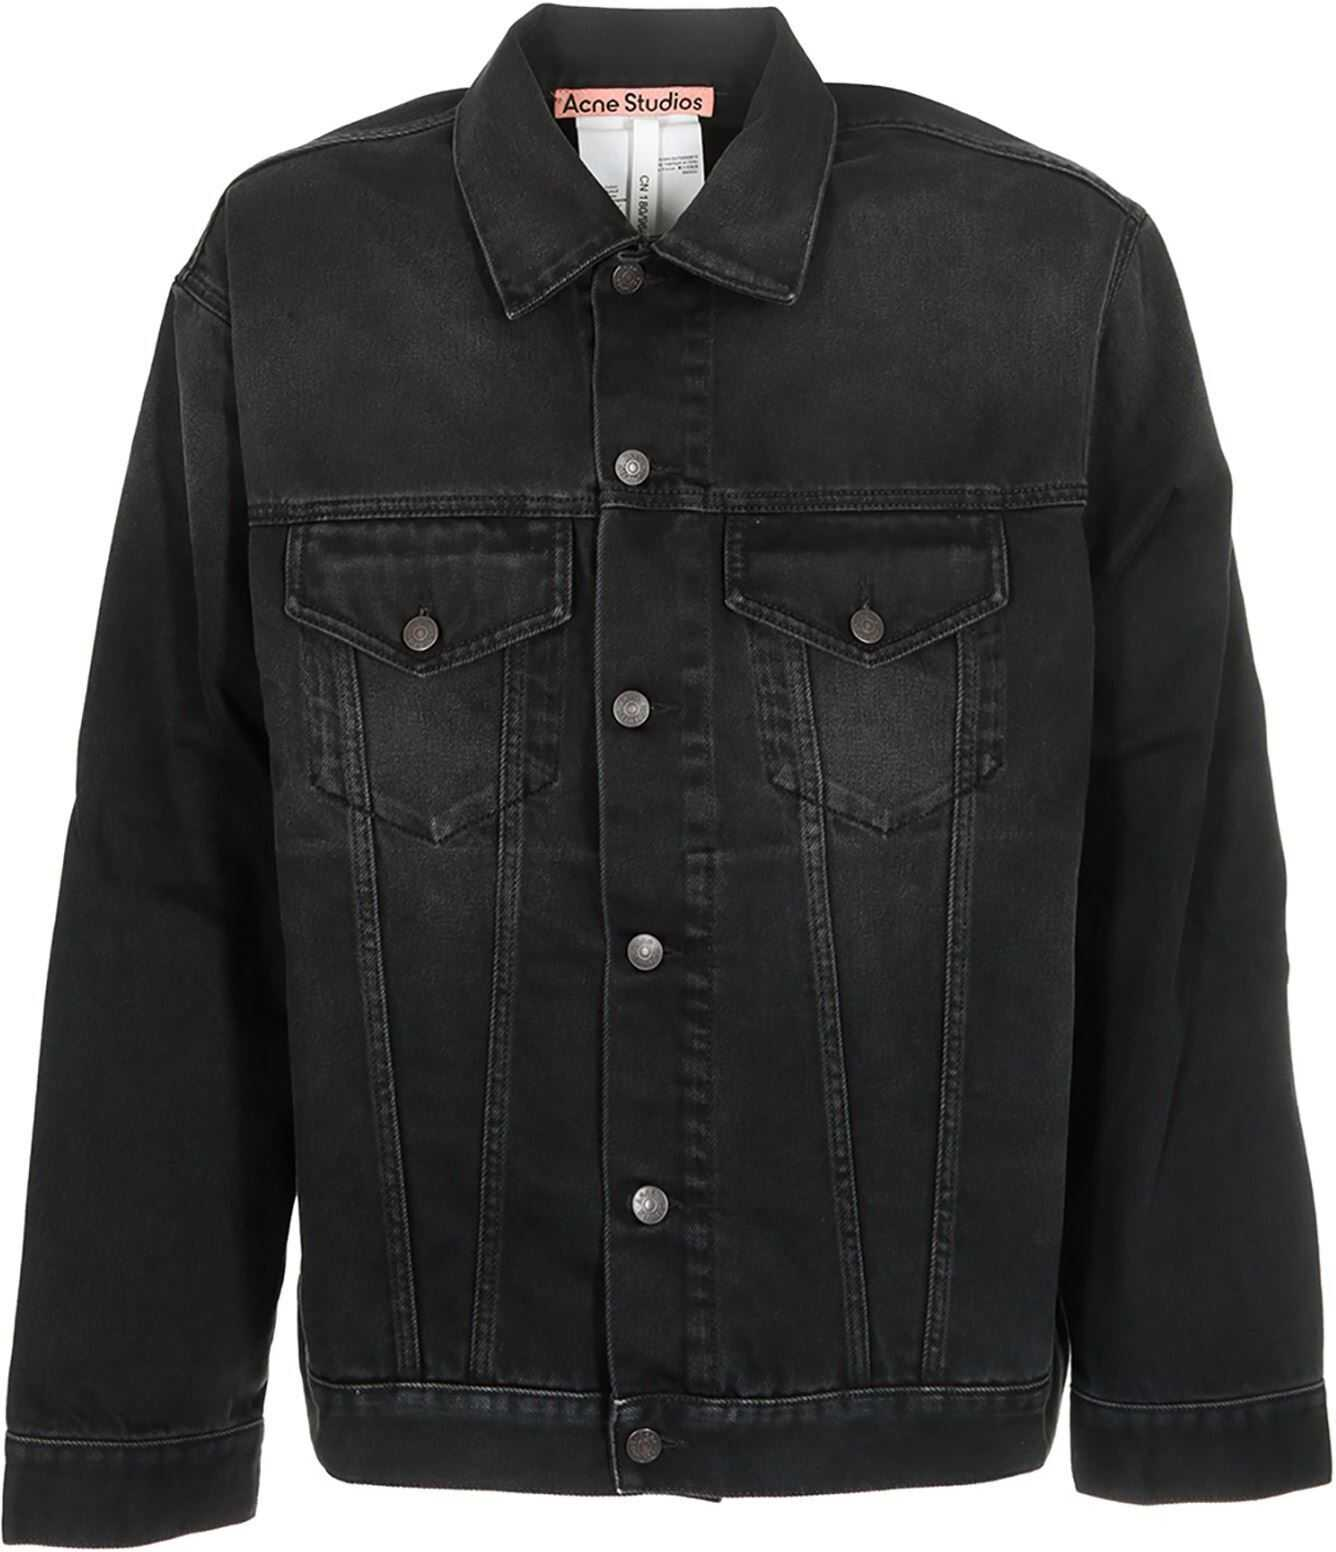 Acne Studios Denim Jacket In Washed Black Black imagine